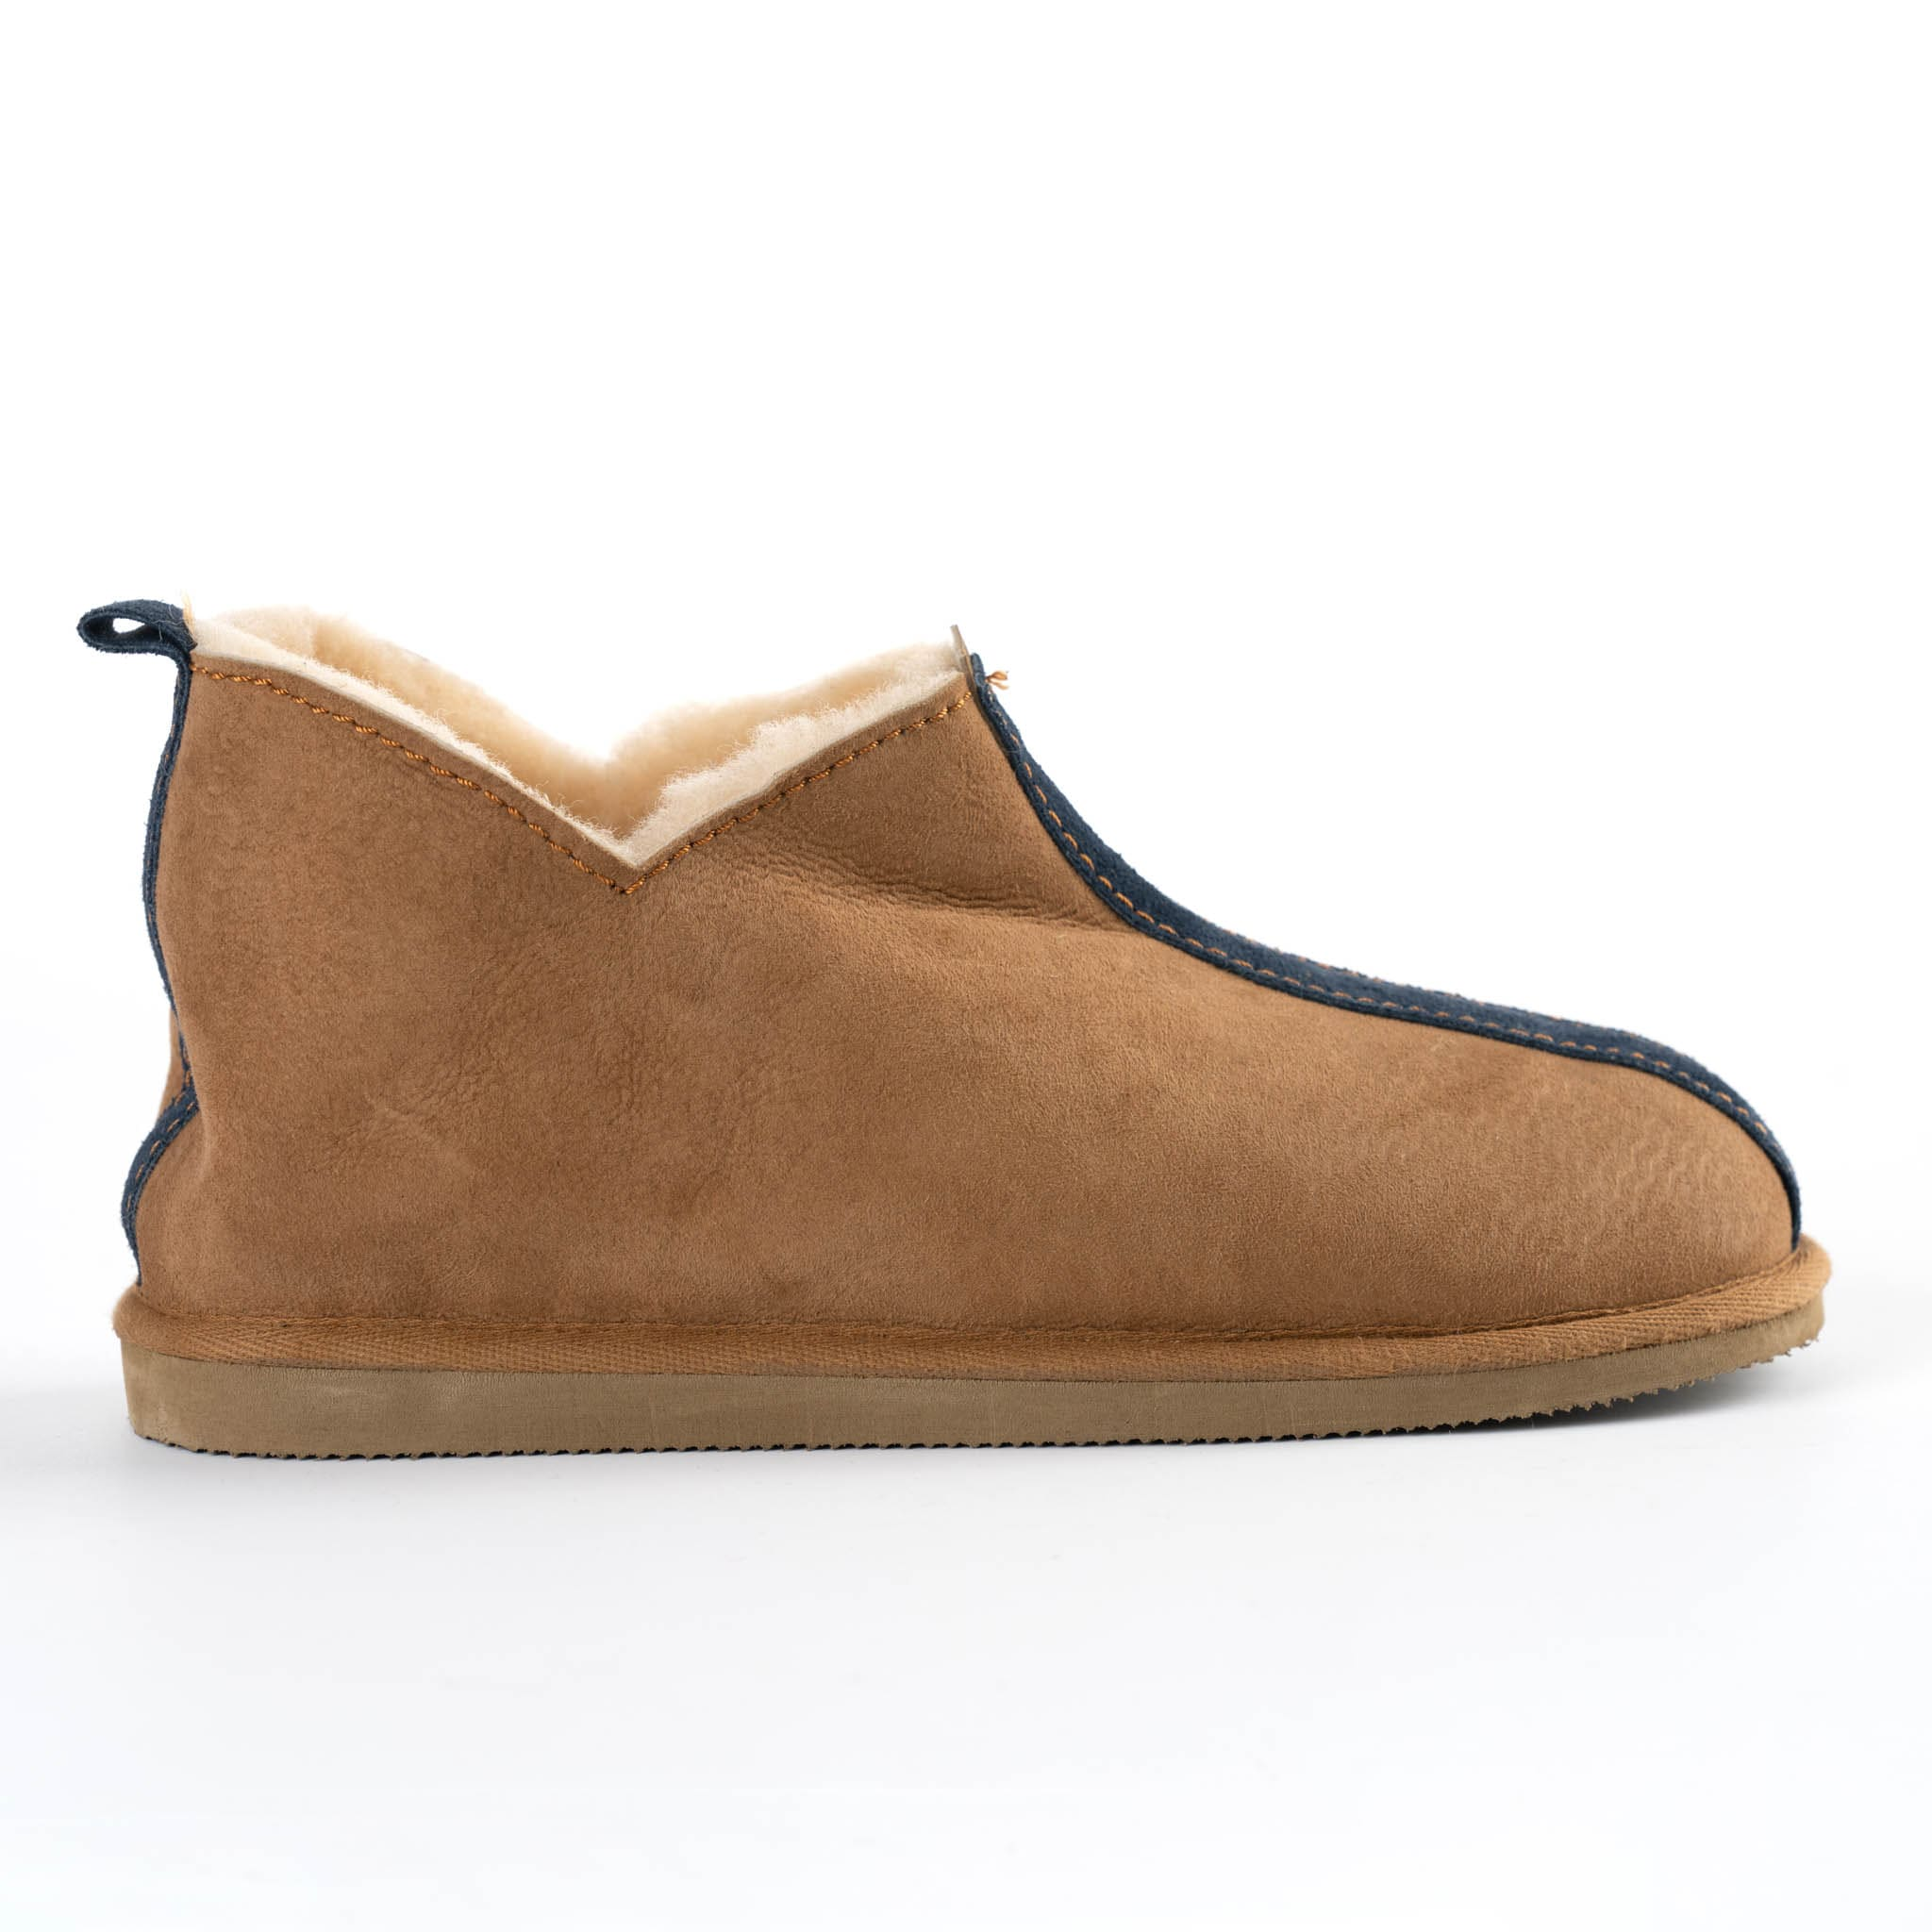 Shepherd Johannes slippers